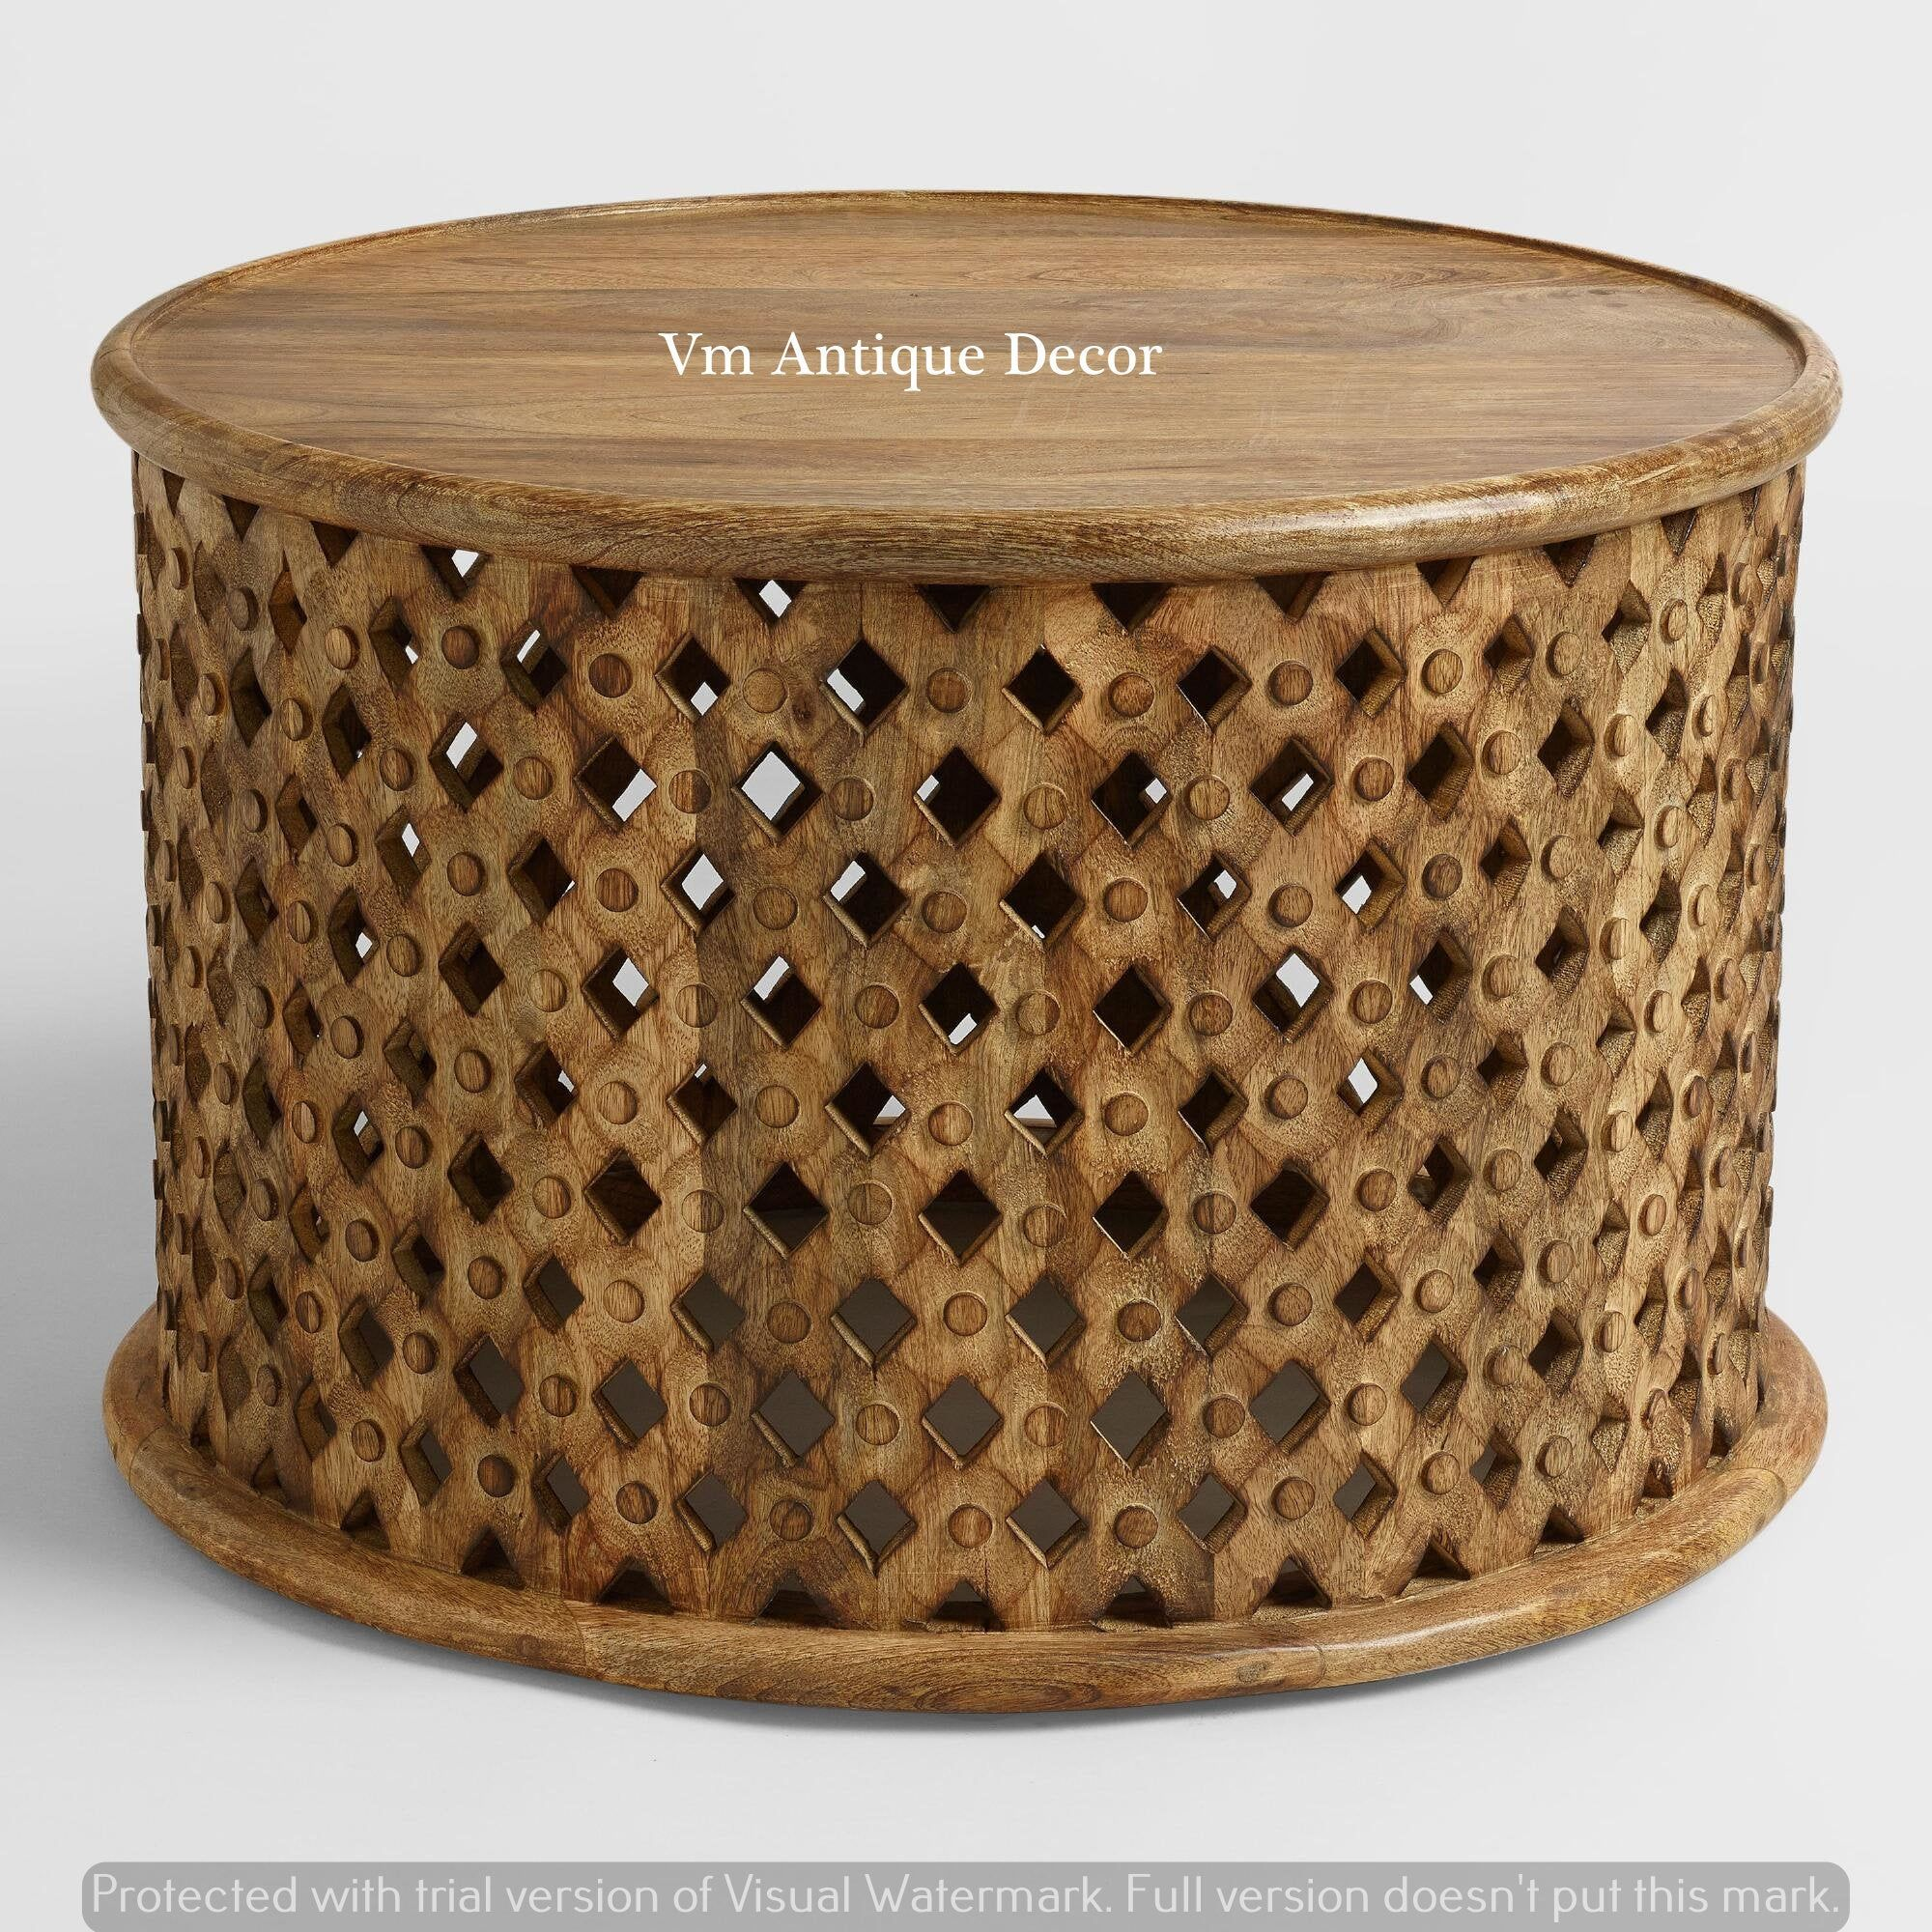 Wooden Handmade Indian Carving Coffee Table By Viratrahomedecor On Etsy In 2021 Coffee Table Wood Drum Coffee Table Coffee Table [ 2000 x 2000 Pixel ]